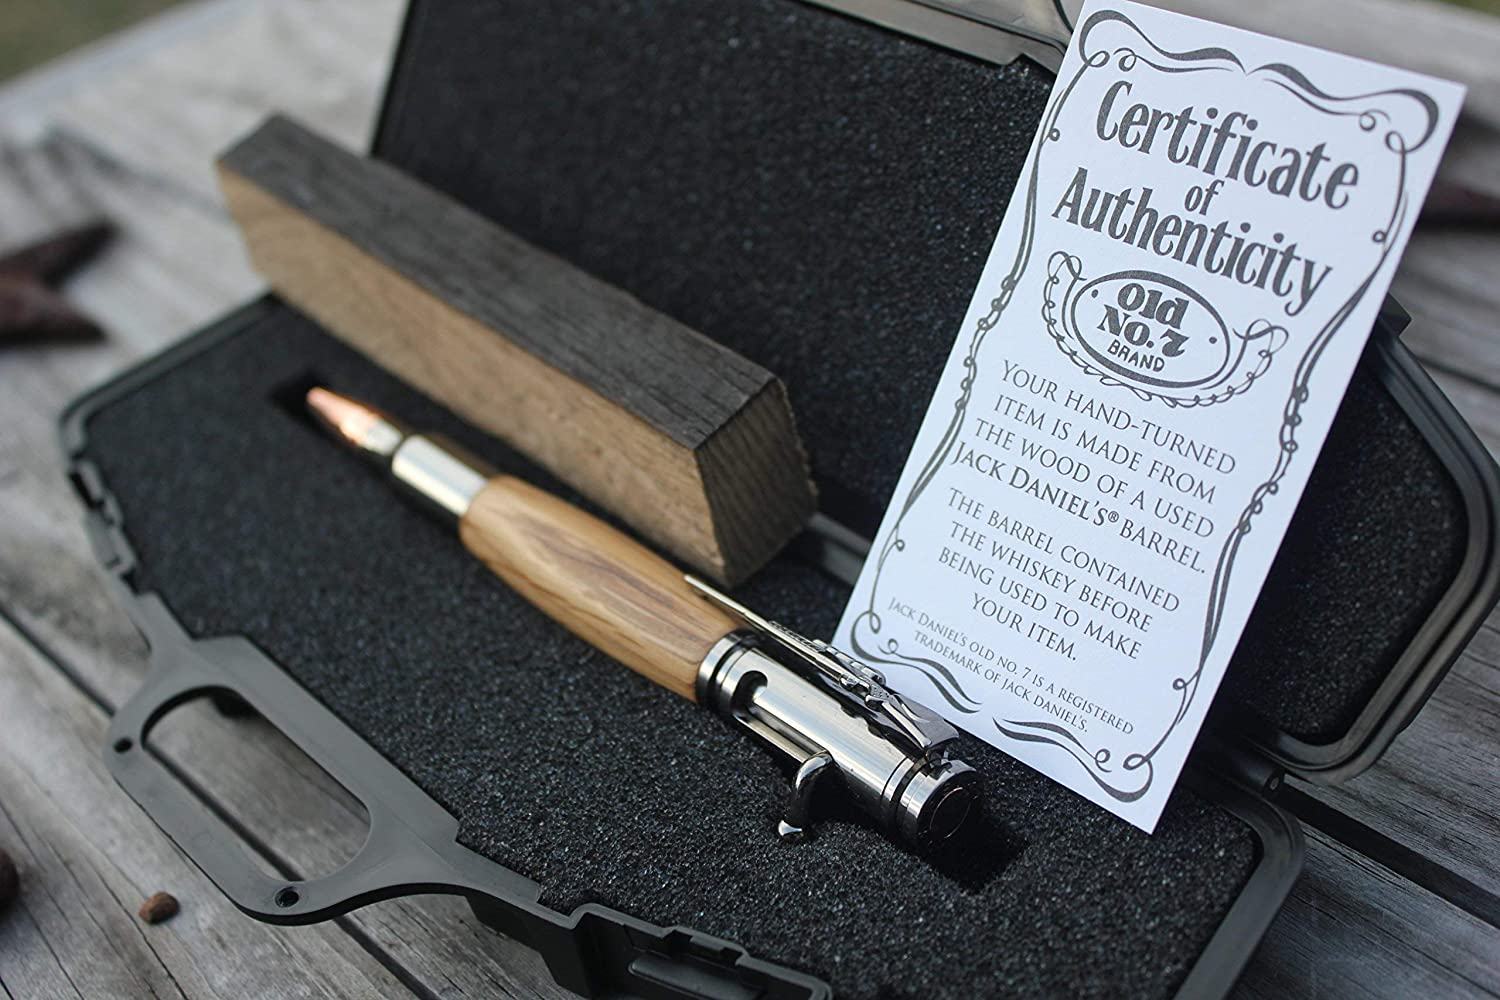 Jack Daniels Whiskey Barrel Wood Turned Pen - 30 Caliber Bolt Action Bullet Pen With Rifle Case Pen Box Stave Cutting and Certificate